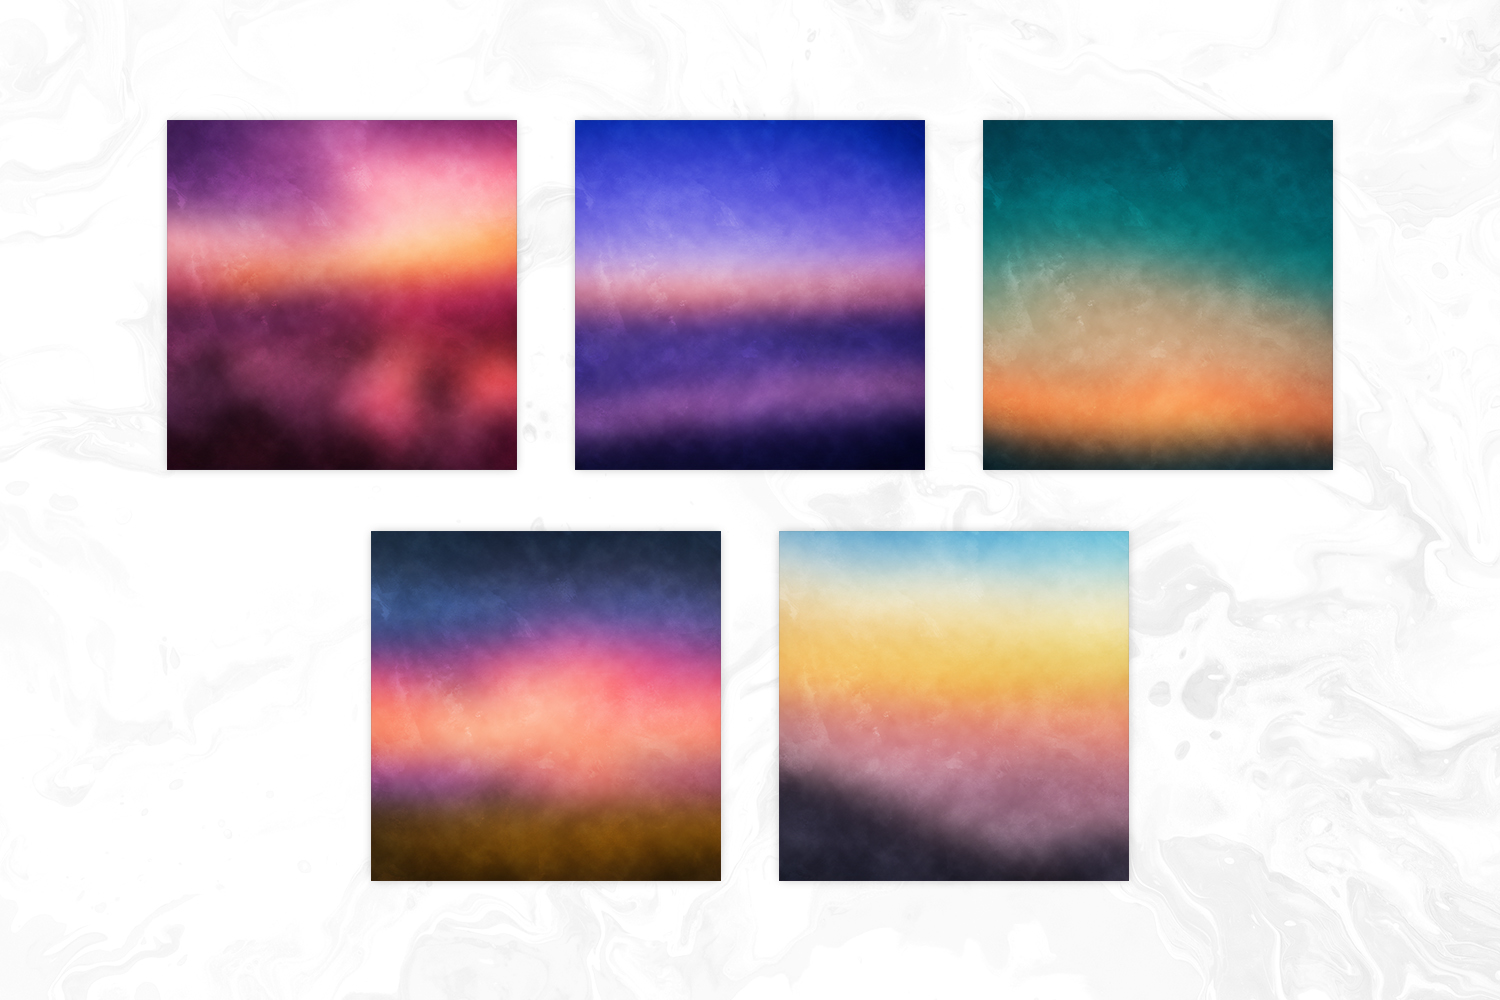 Blur Sunset Grungy Backgrounds example image 3